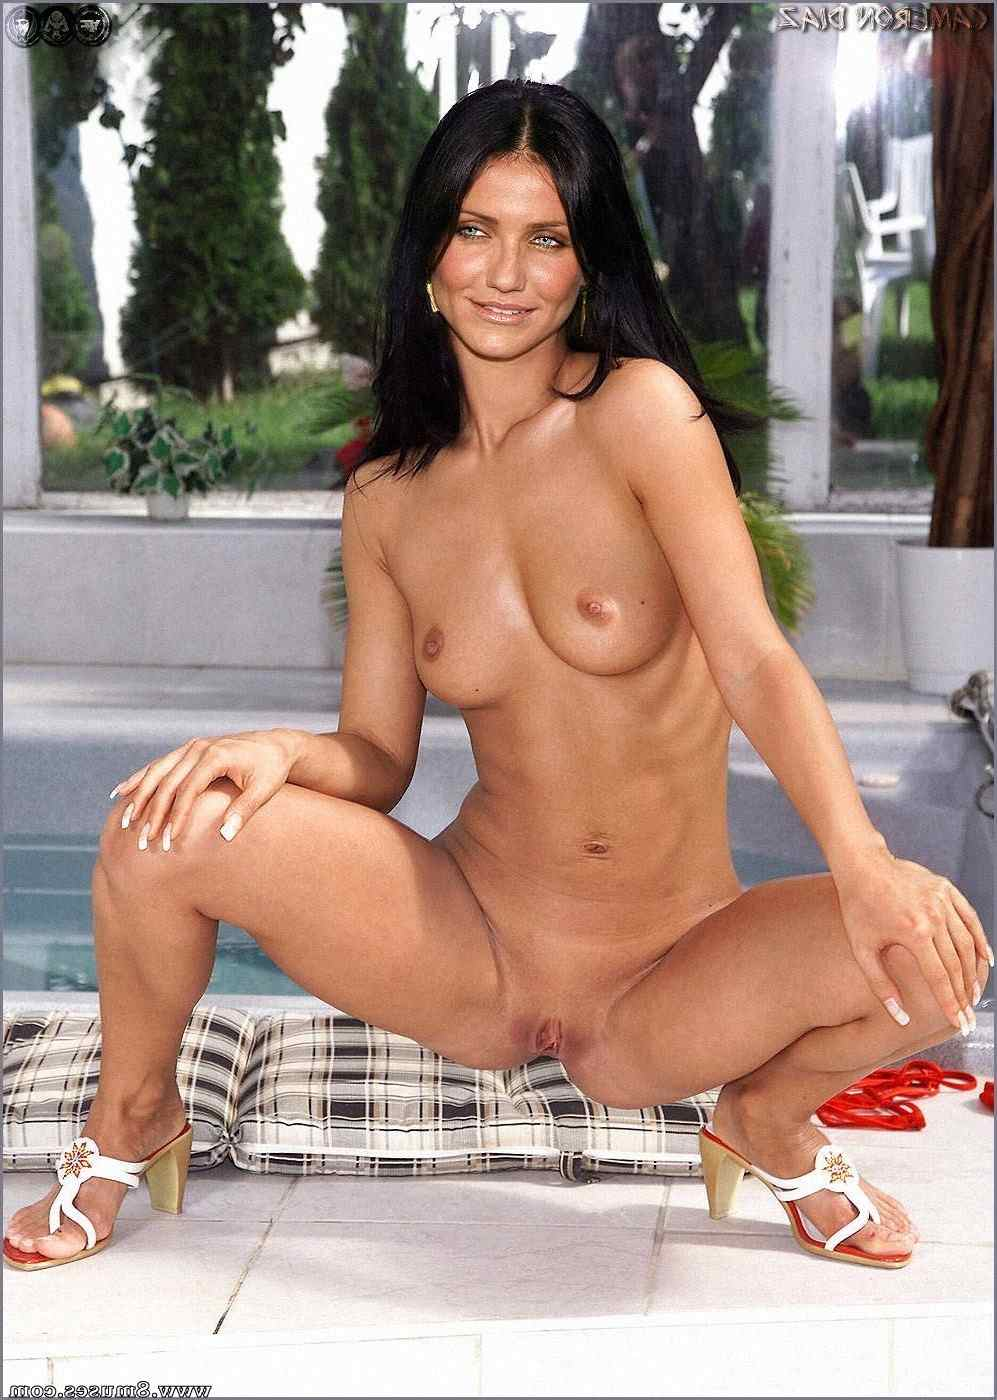 Fake-Celebrities-Sex-Pictures/Cameron-Diaz Cameron_Diaz__8muses_-_Sex_and_Porn_Comics_38.jpg